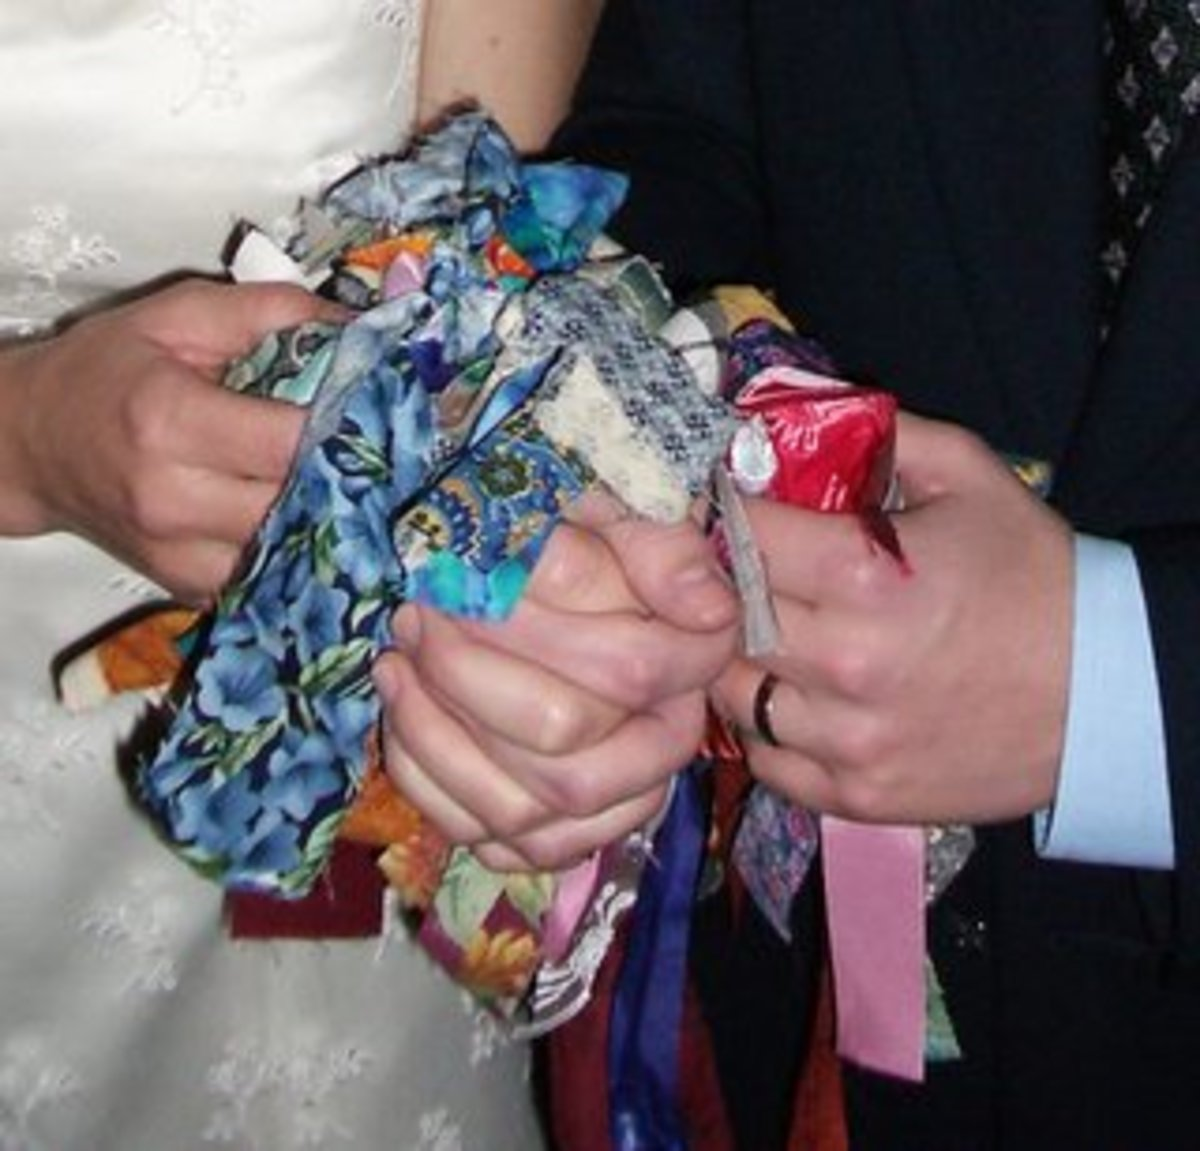 Unconventional handfasting in which each guest tied on a blessed ribbon.